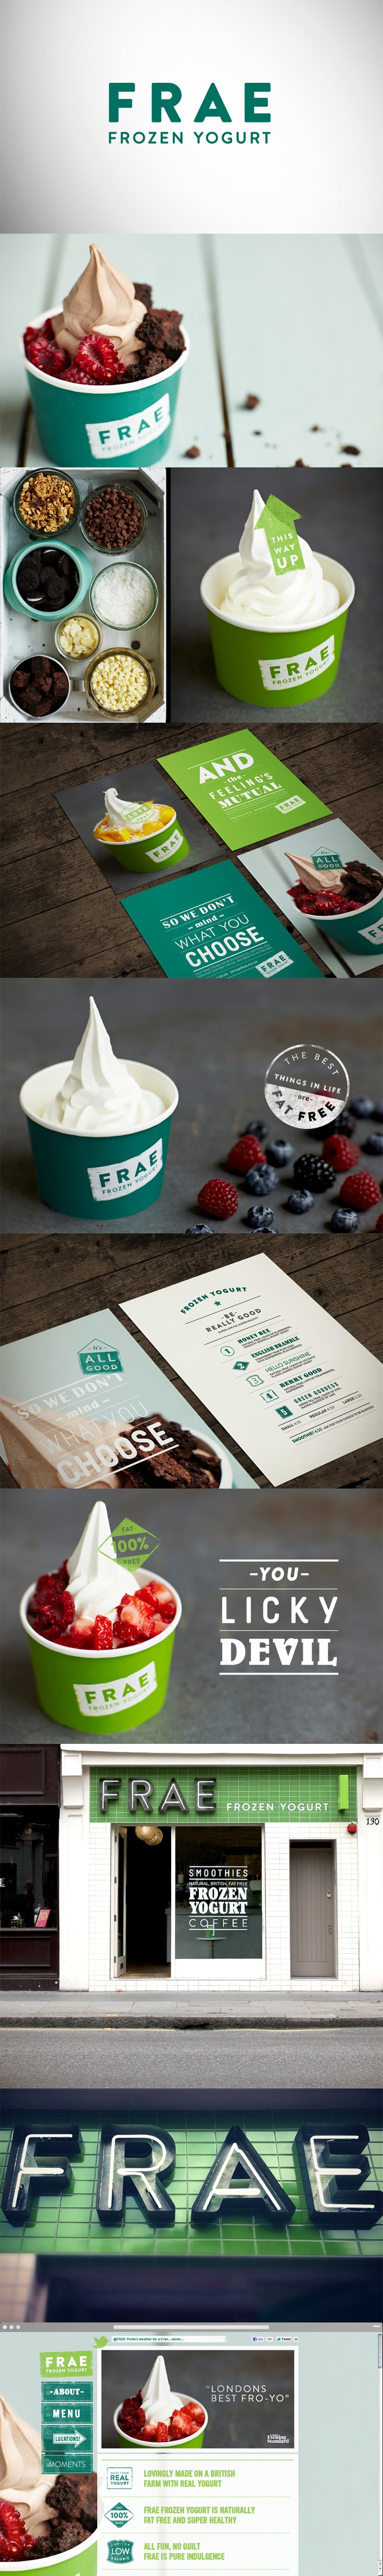 Mmm yogurt. #packaging #branding #marketing. PD